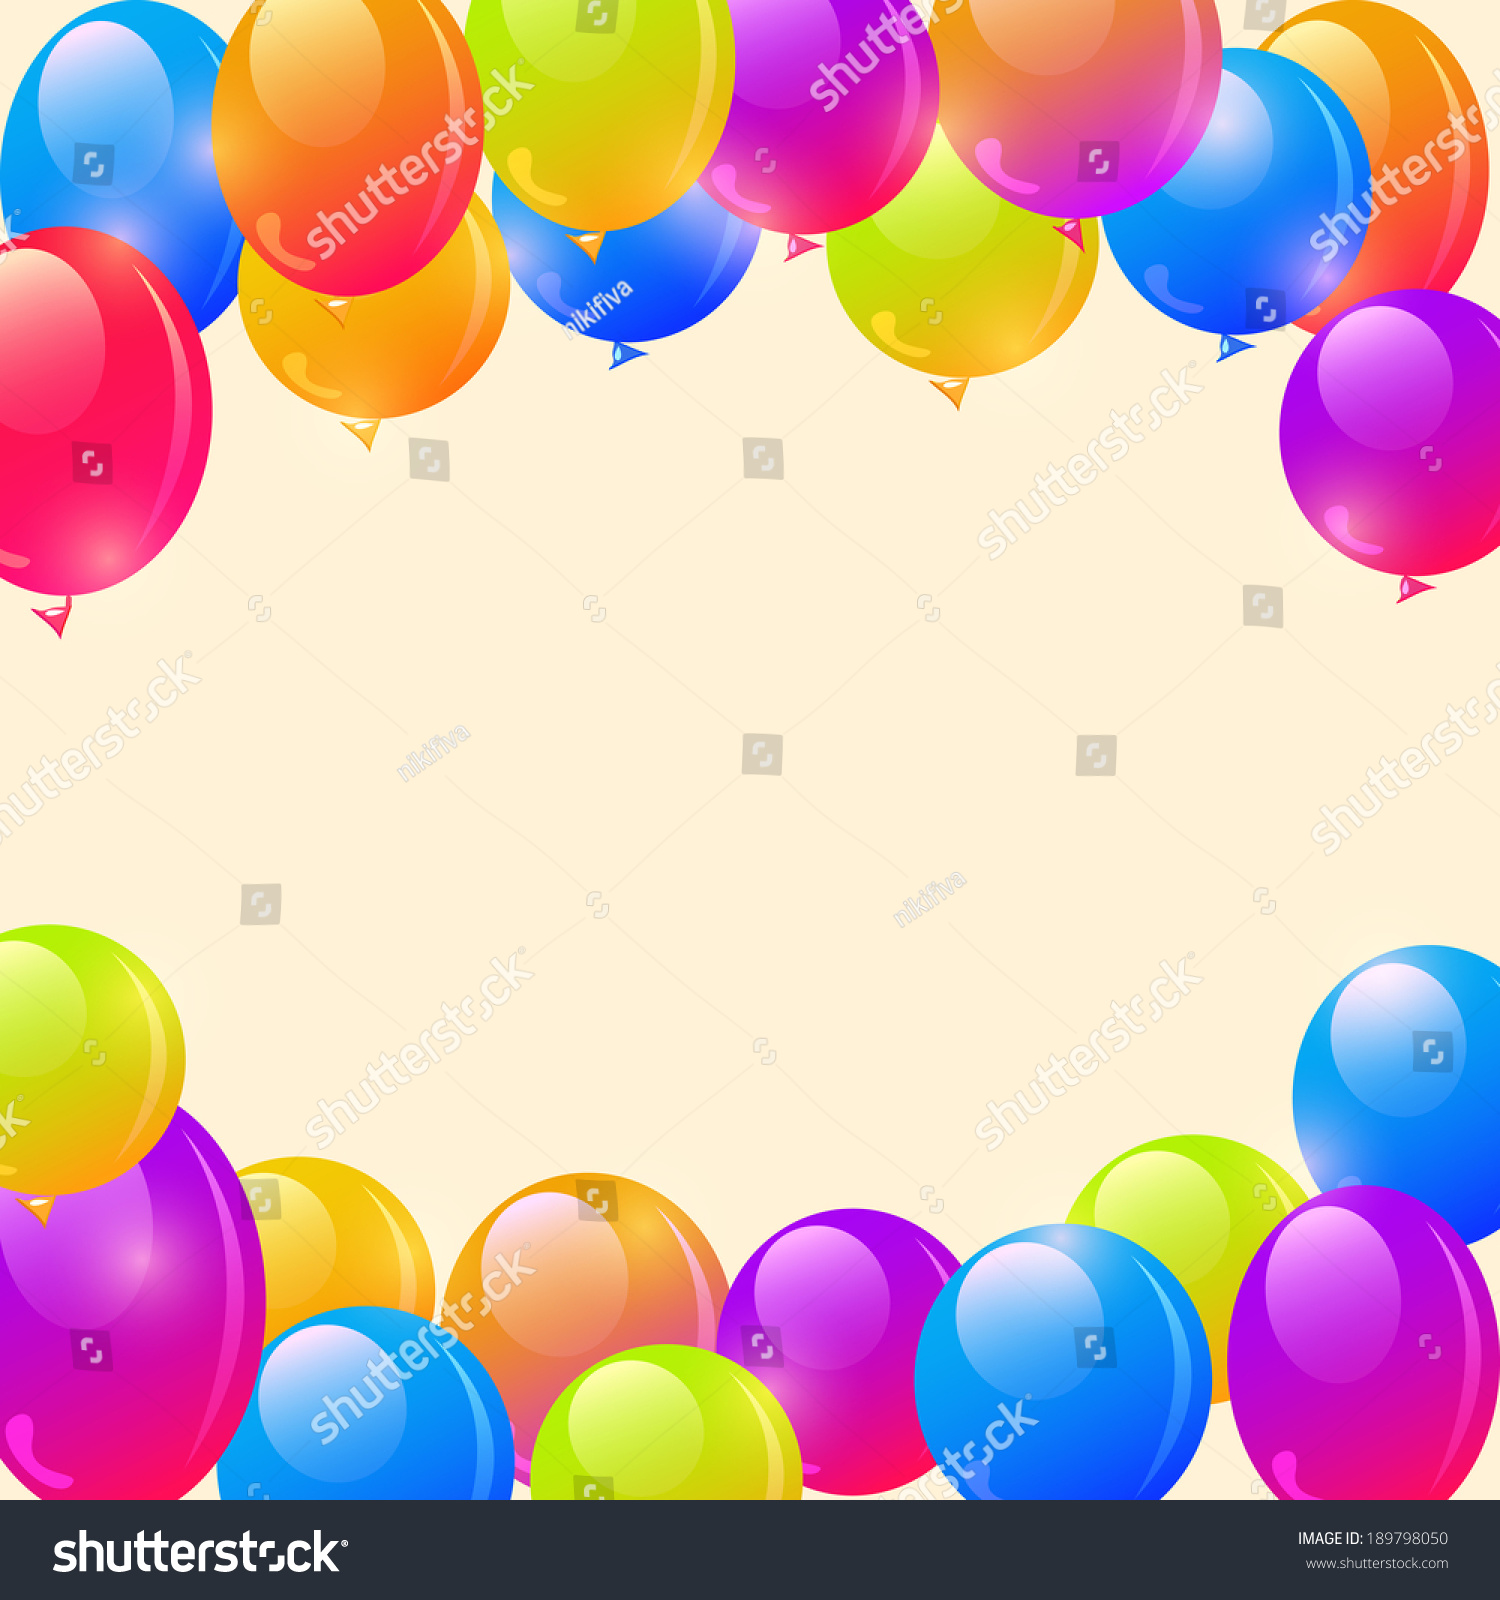 Birthday Balloon Frame balloons frame stock photos, images, & pictures ...